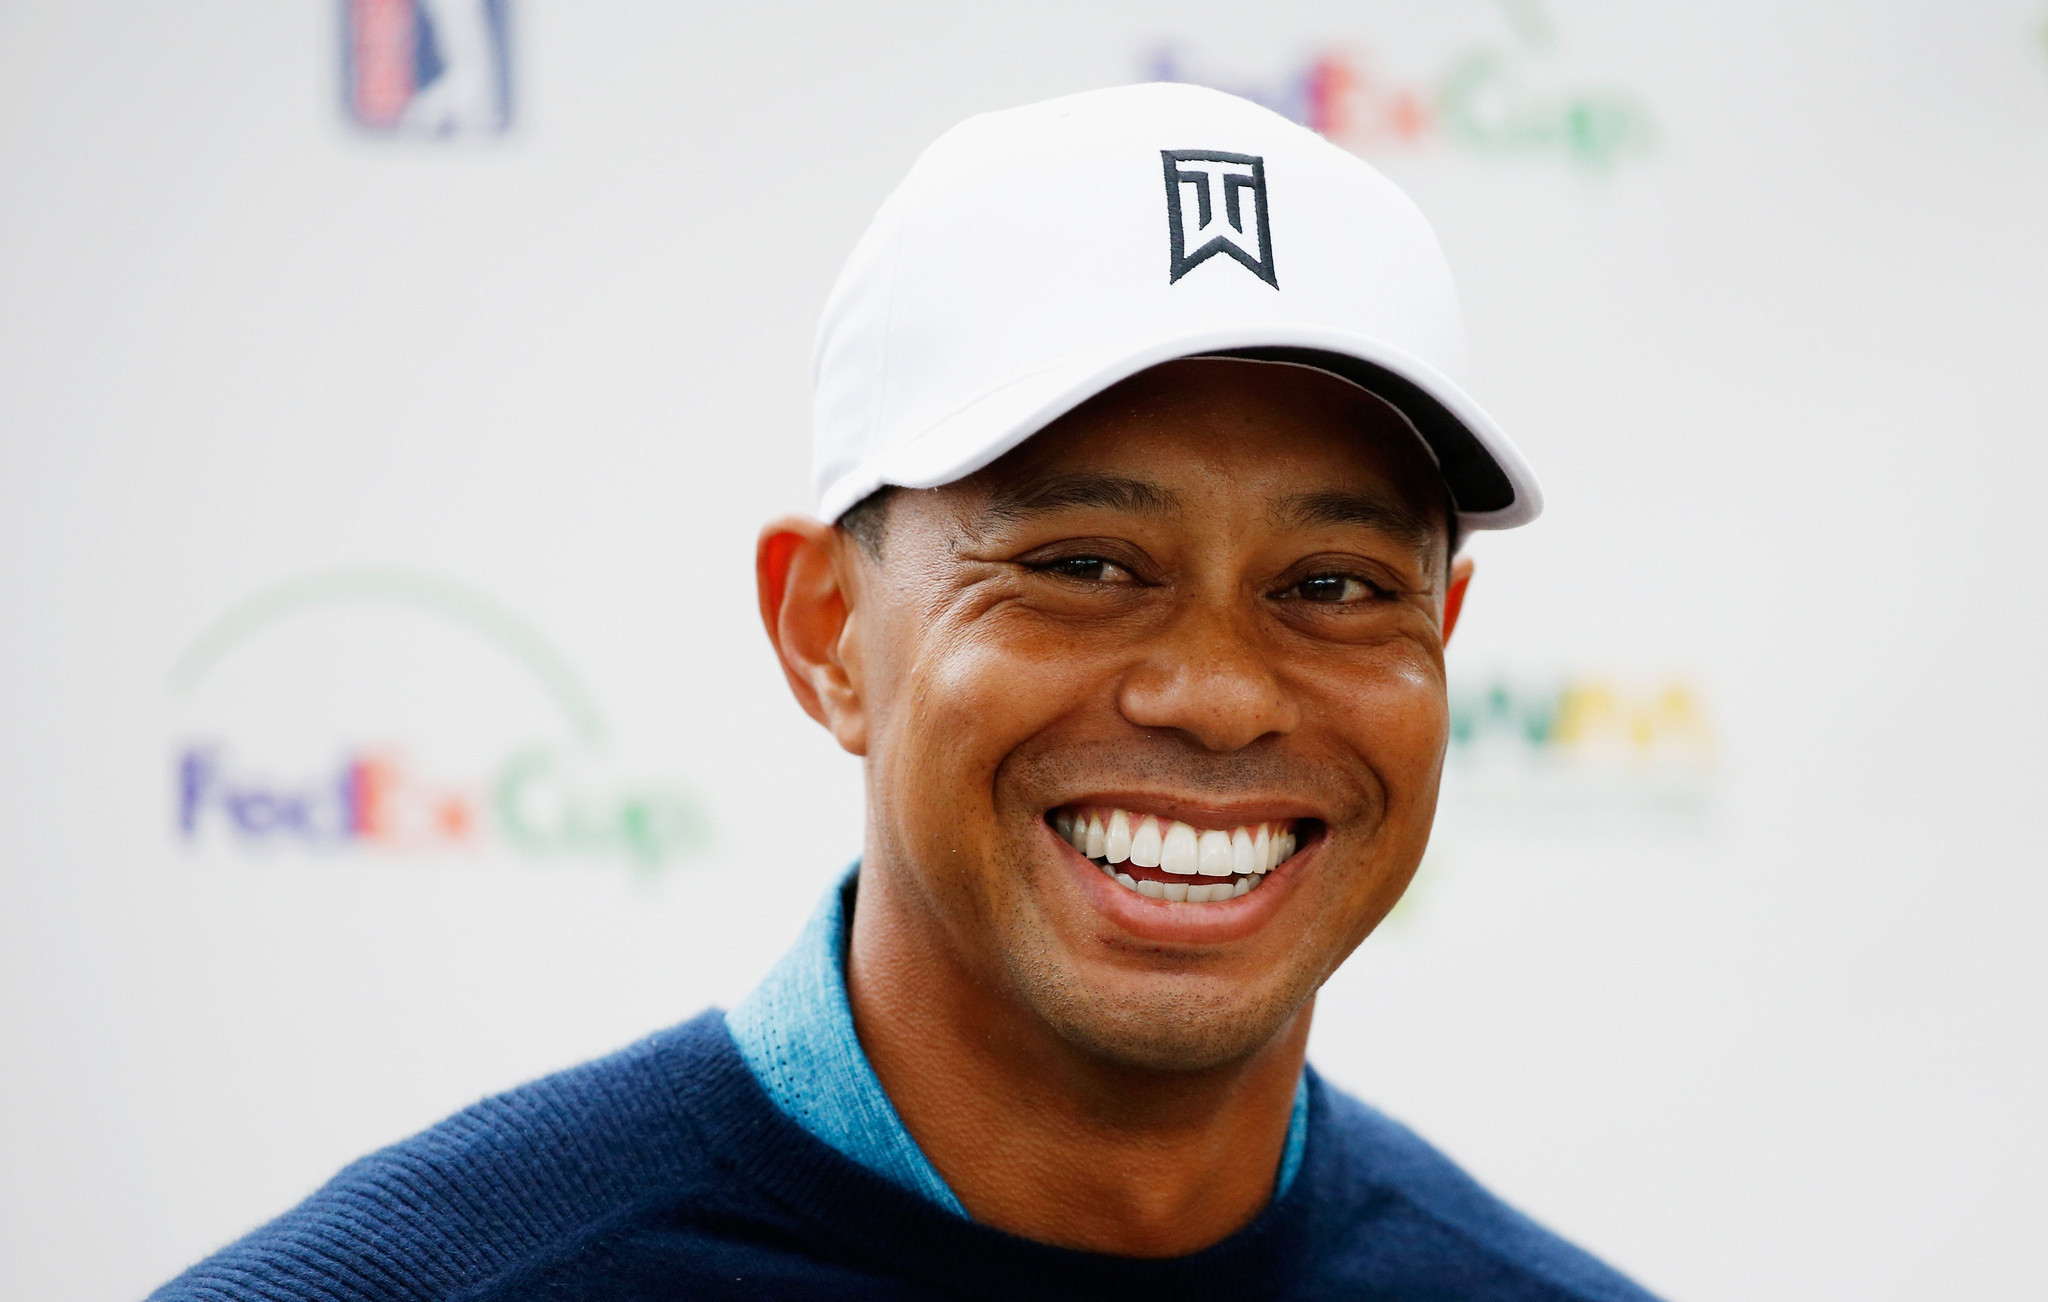 Tale of Tiger Wood's tooth: 'Dude ... caught me square on ...